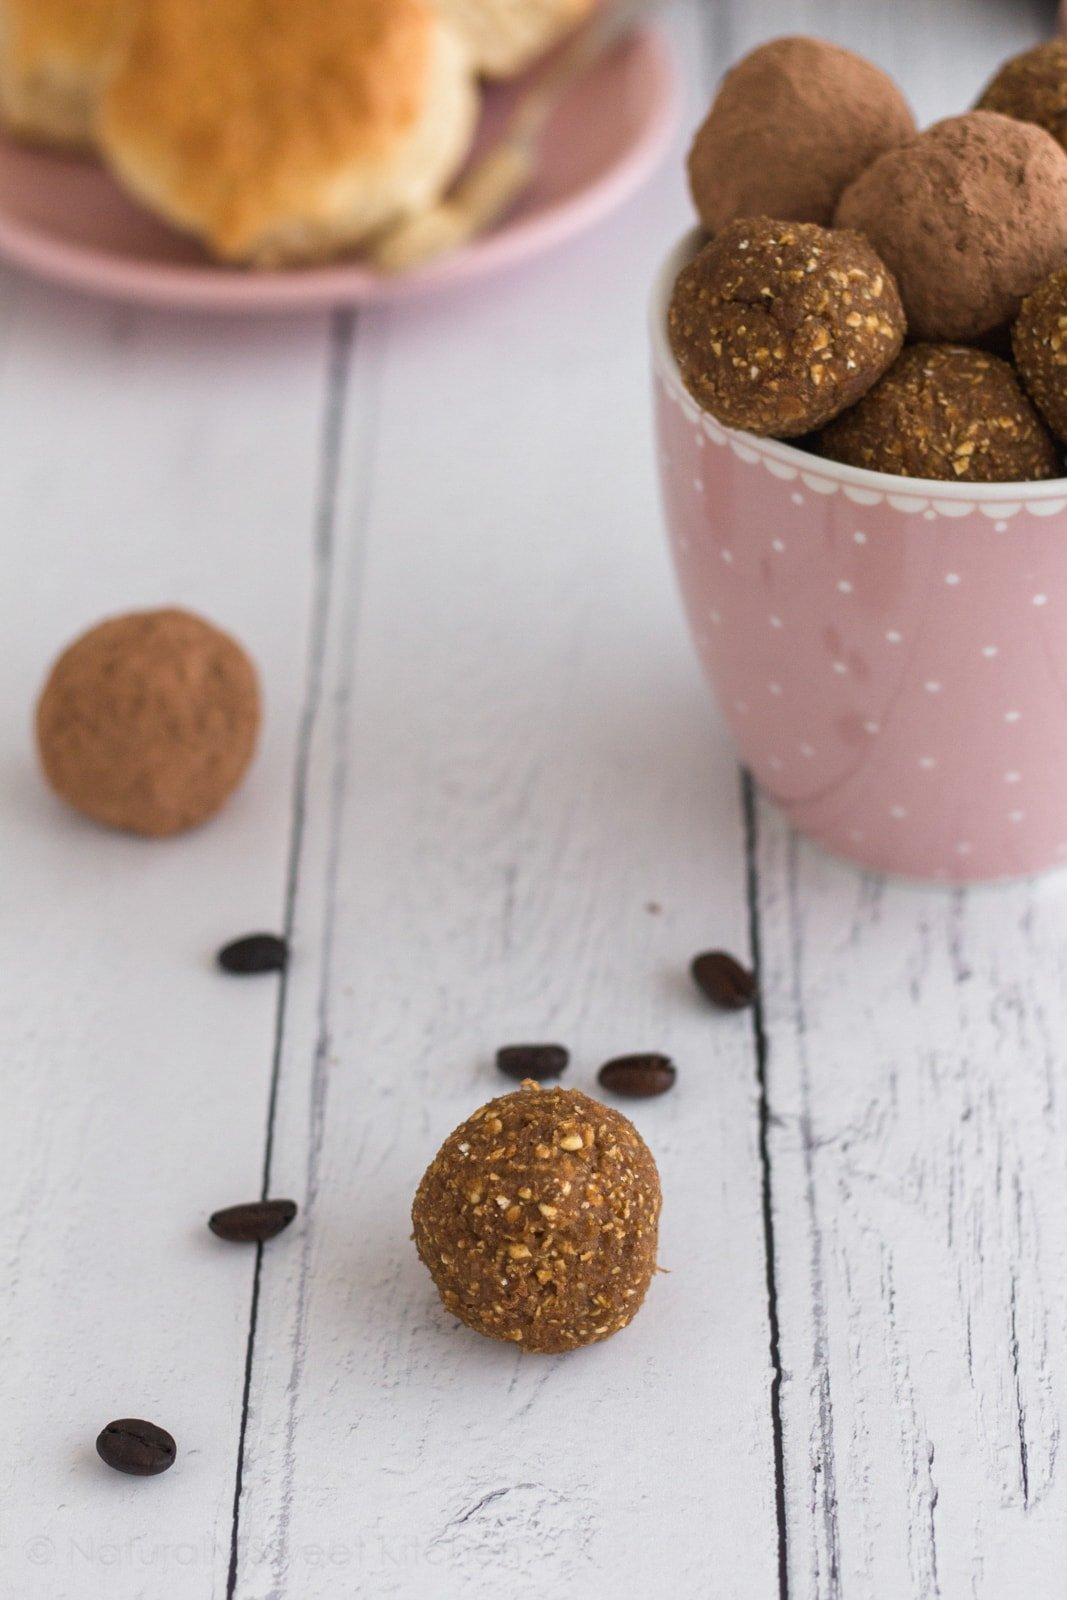 Easily prep over 30 days of protein-packed healthy snacks with Naturally Sweet Kitchen's new ebook, 30 Days of Protein Truffles. Perfect for back to school snacks, work out snacks, or a quick breakfast! #naturallysweetkitchen #30DaysofProteinTruffles #energybites #proteinballs #proteinsnacks